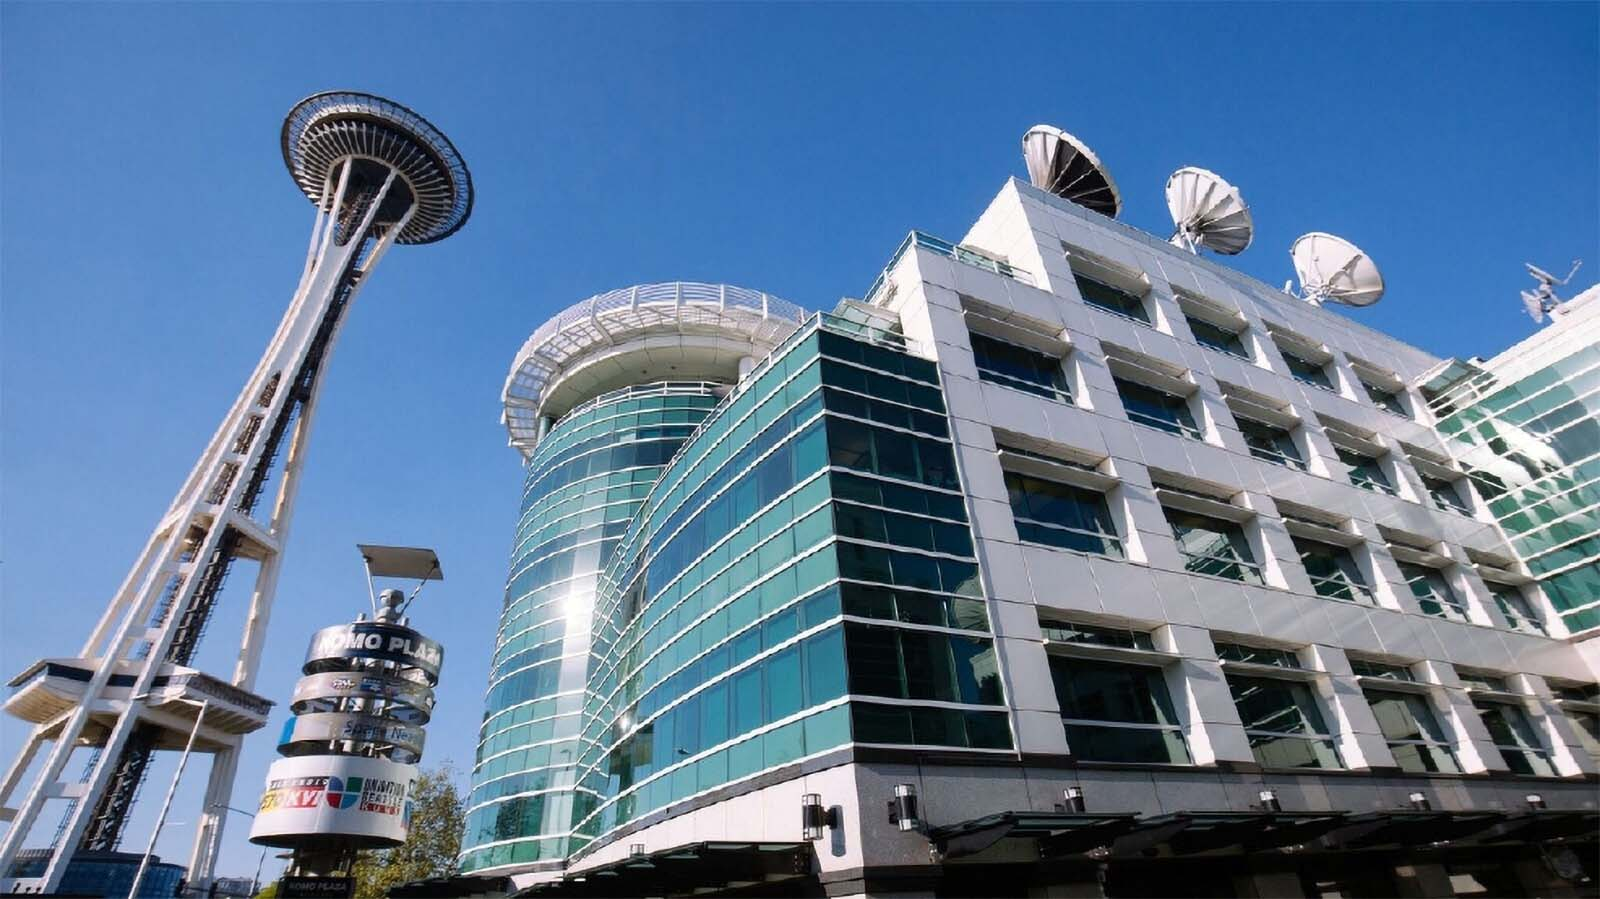 KOMO 4 News Building